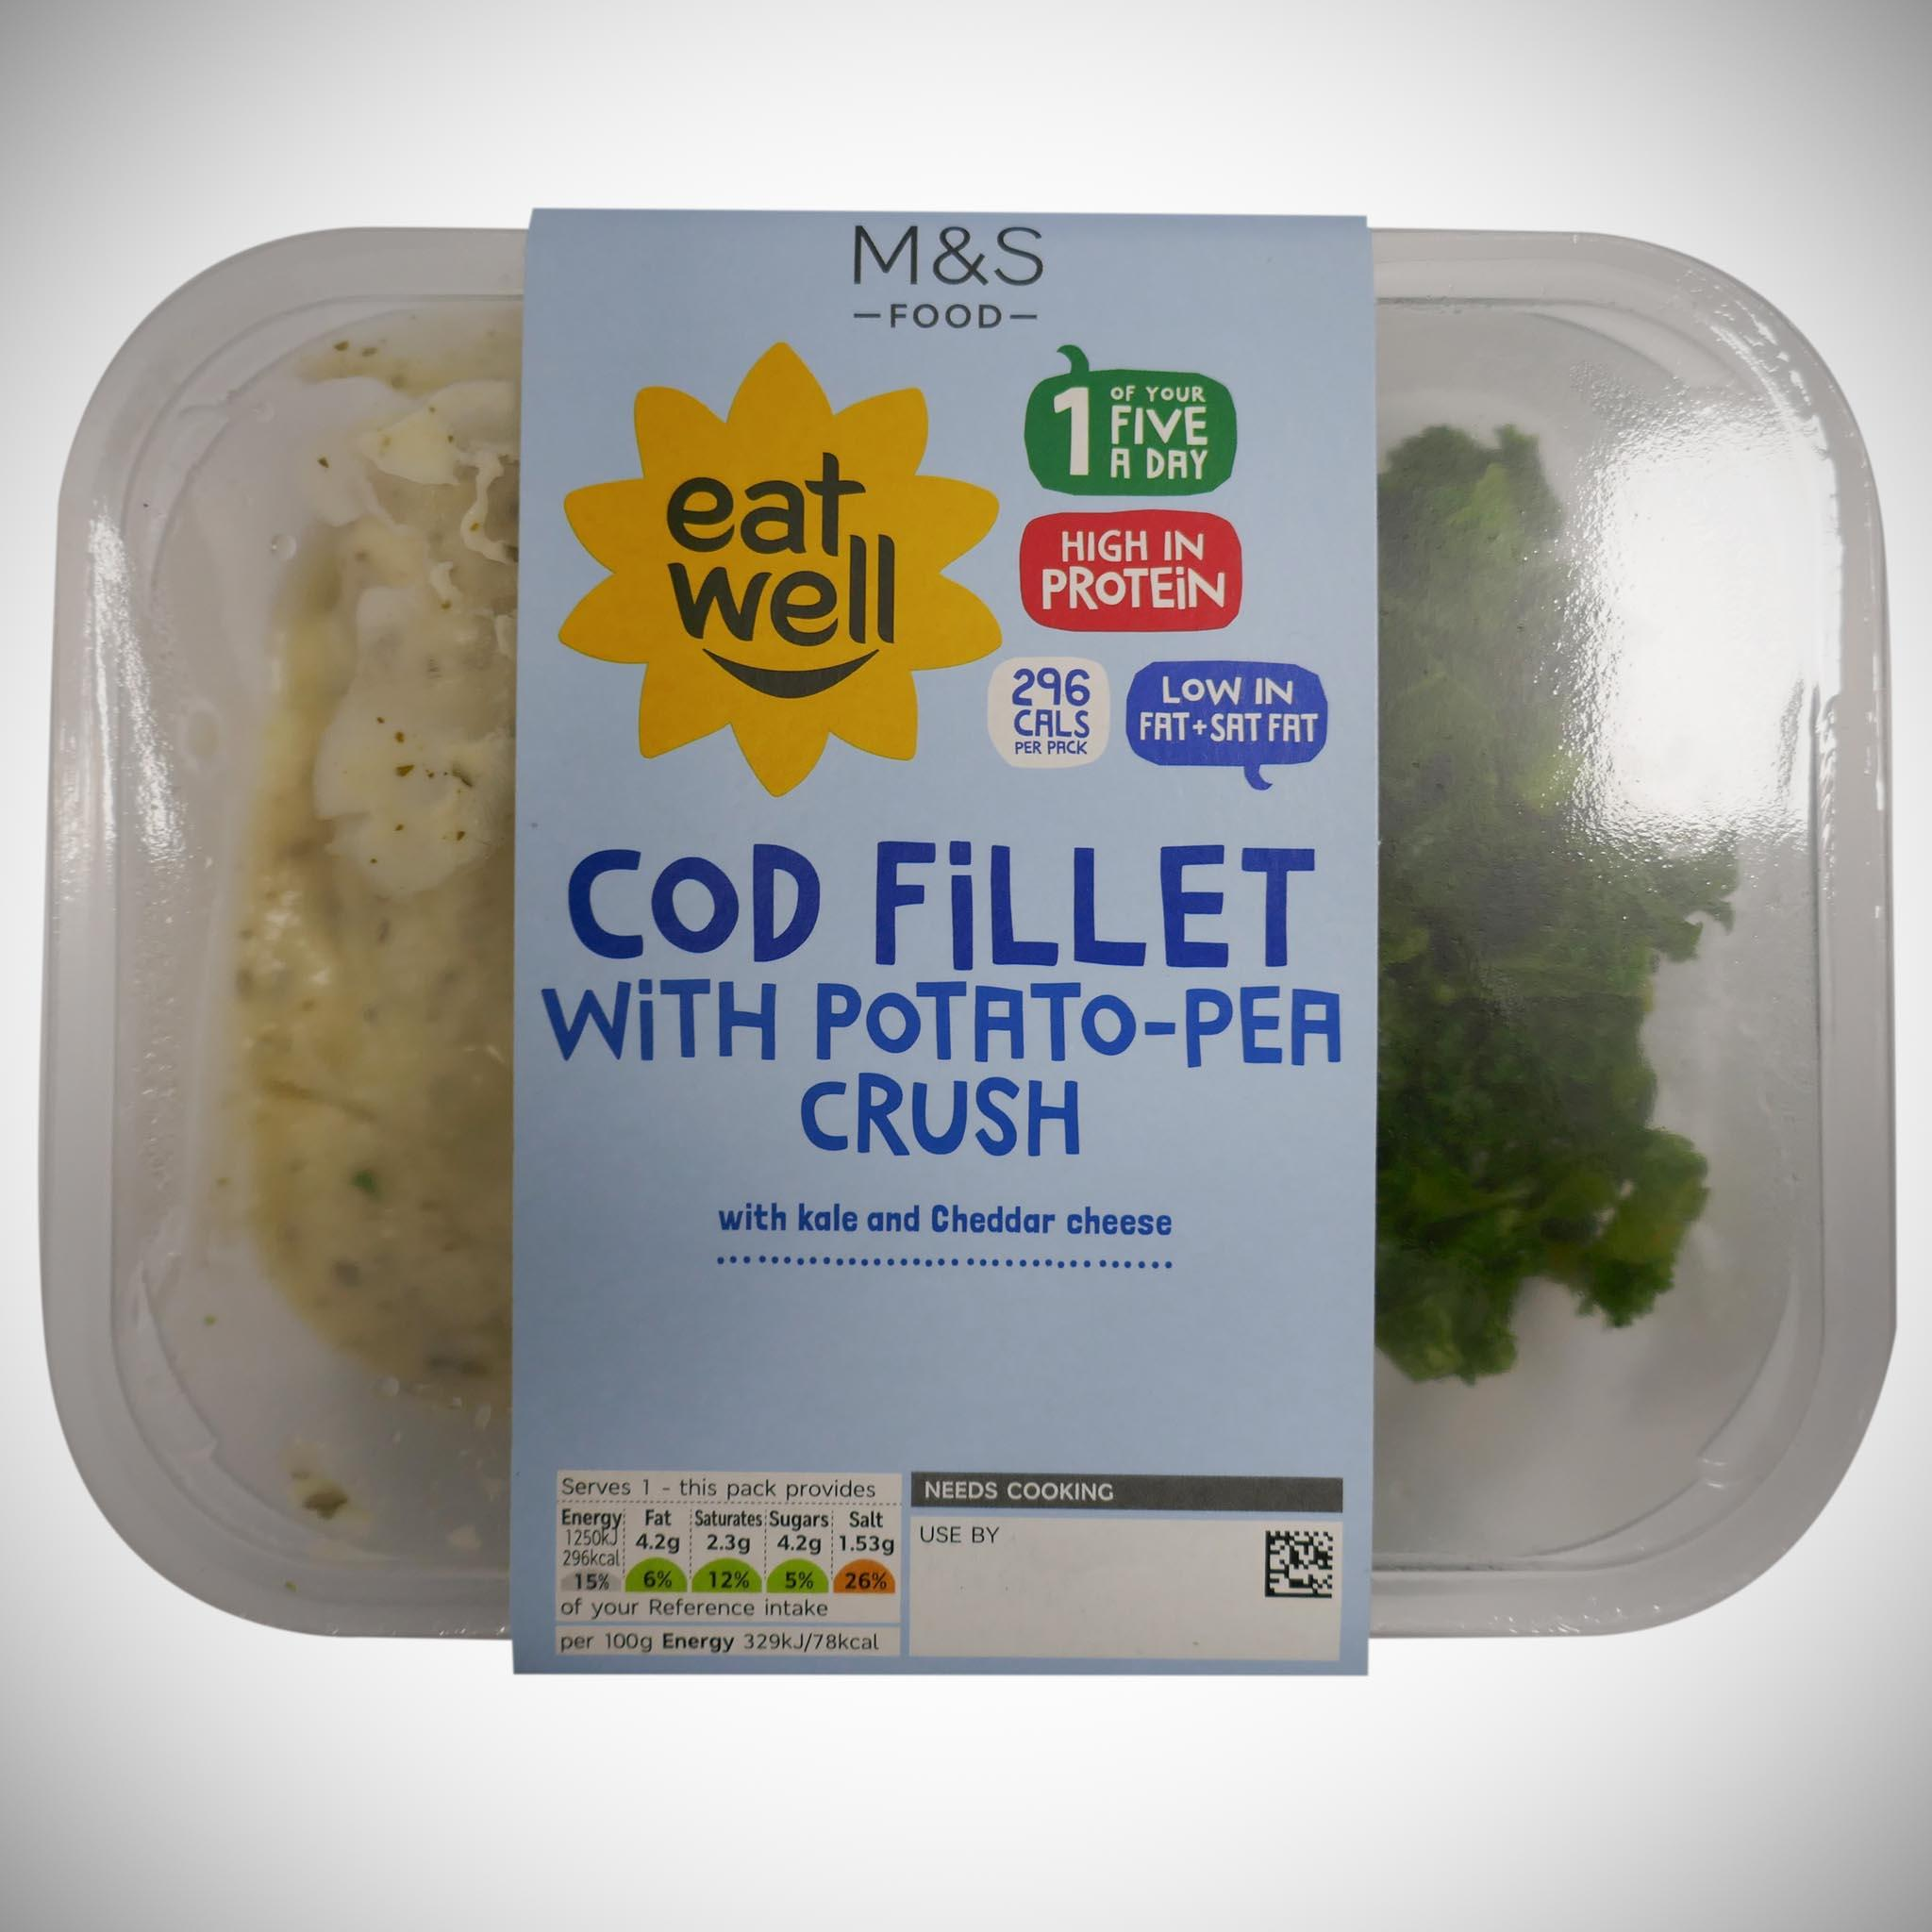 'Eat Well' Cod Fillet with Potato-Pea Crush 380g